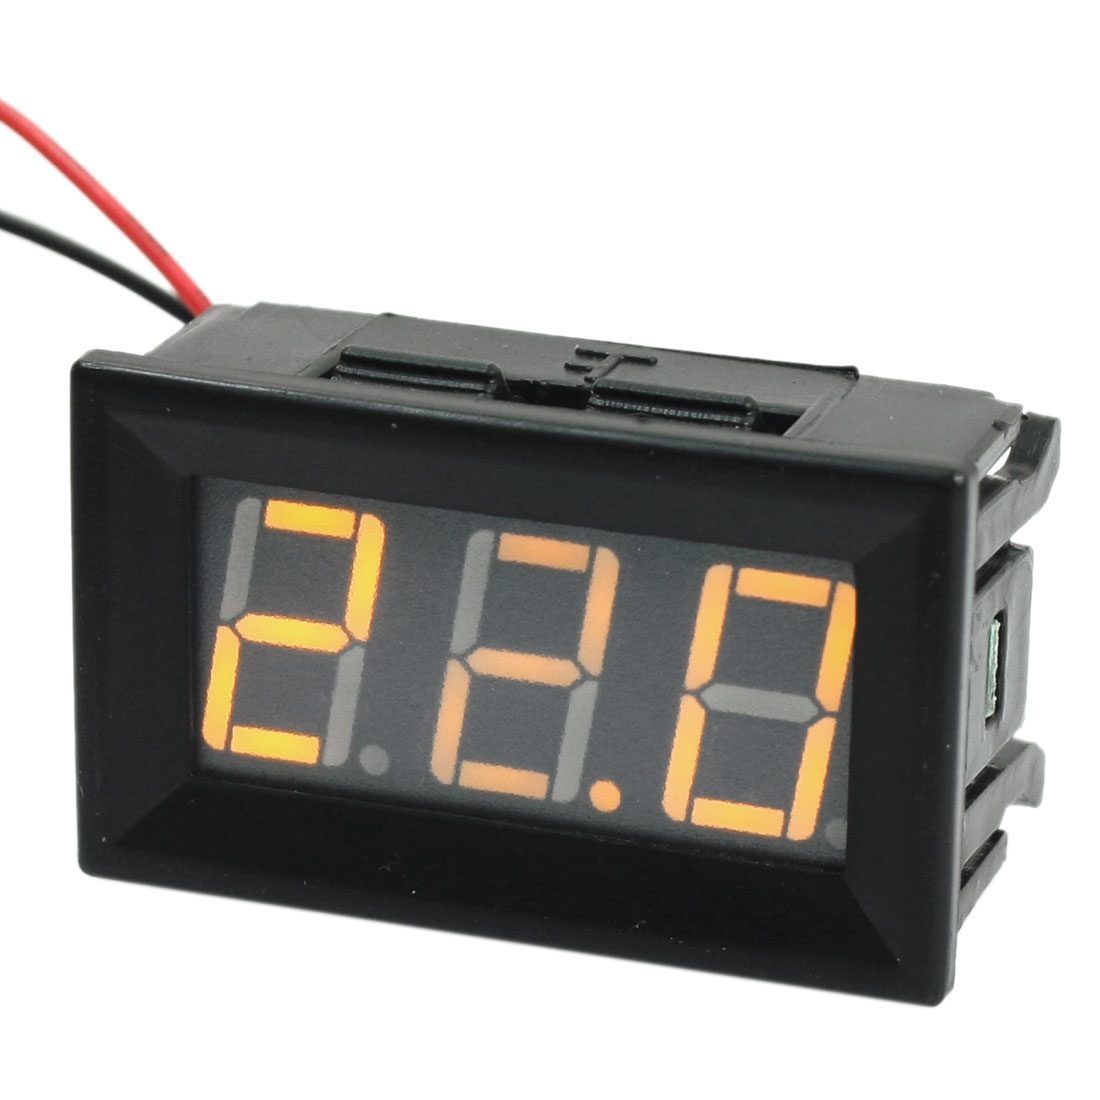 Yellow-Digit-LED-Digital-Display-Voltage-Meter-Voltmeter-Panel-Gauge-DC5-120V